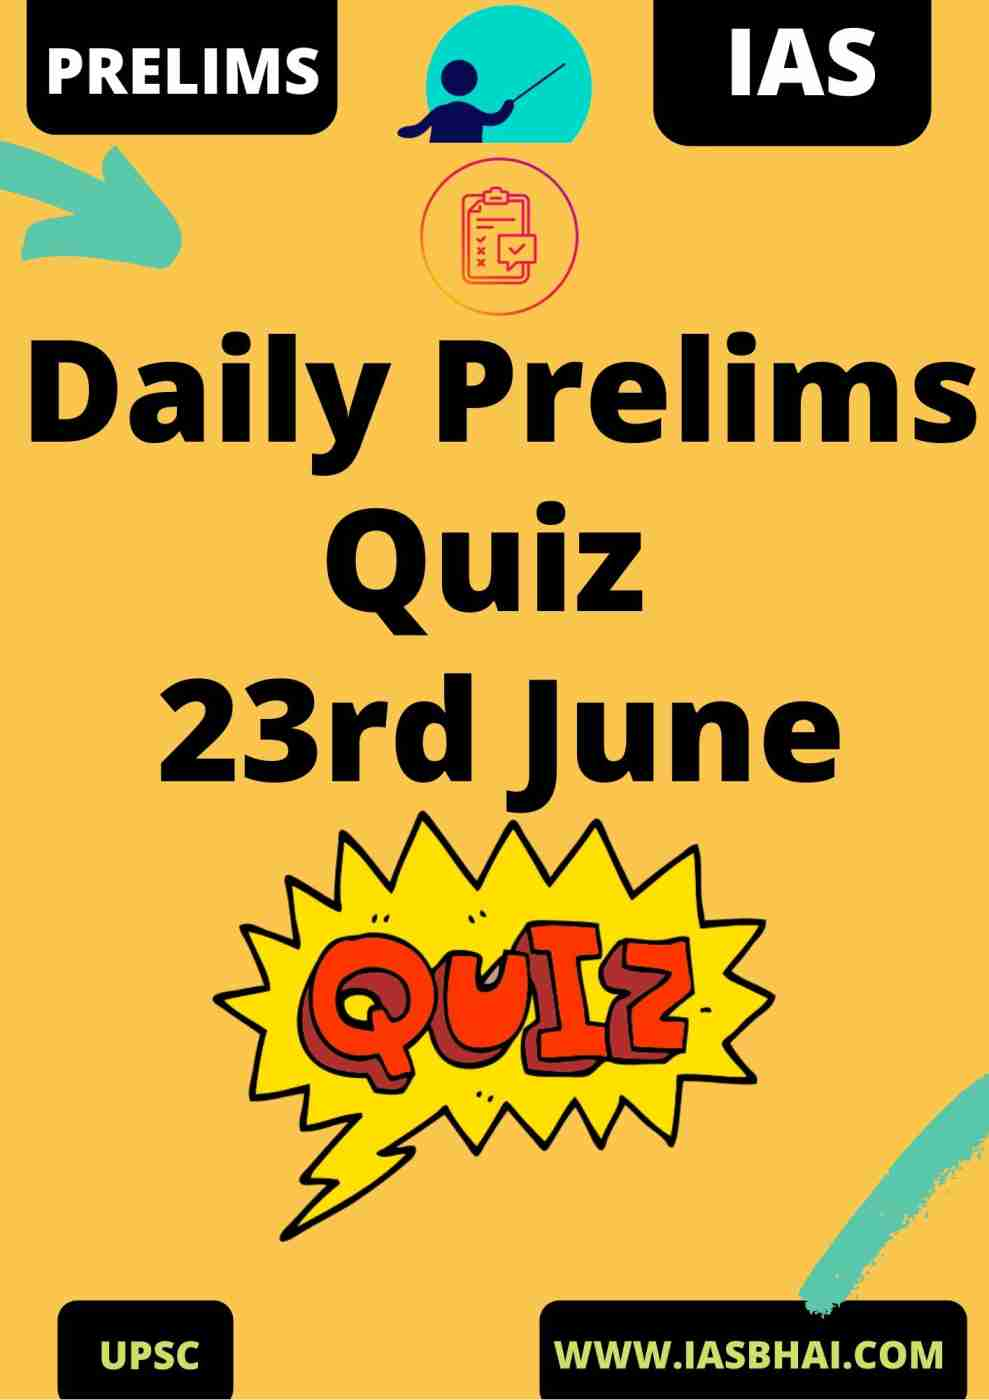 Daily Prelims Quiz 23rd June